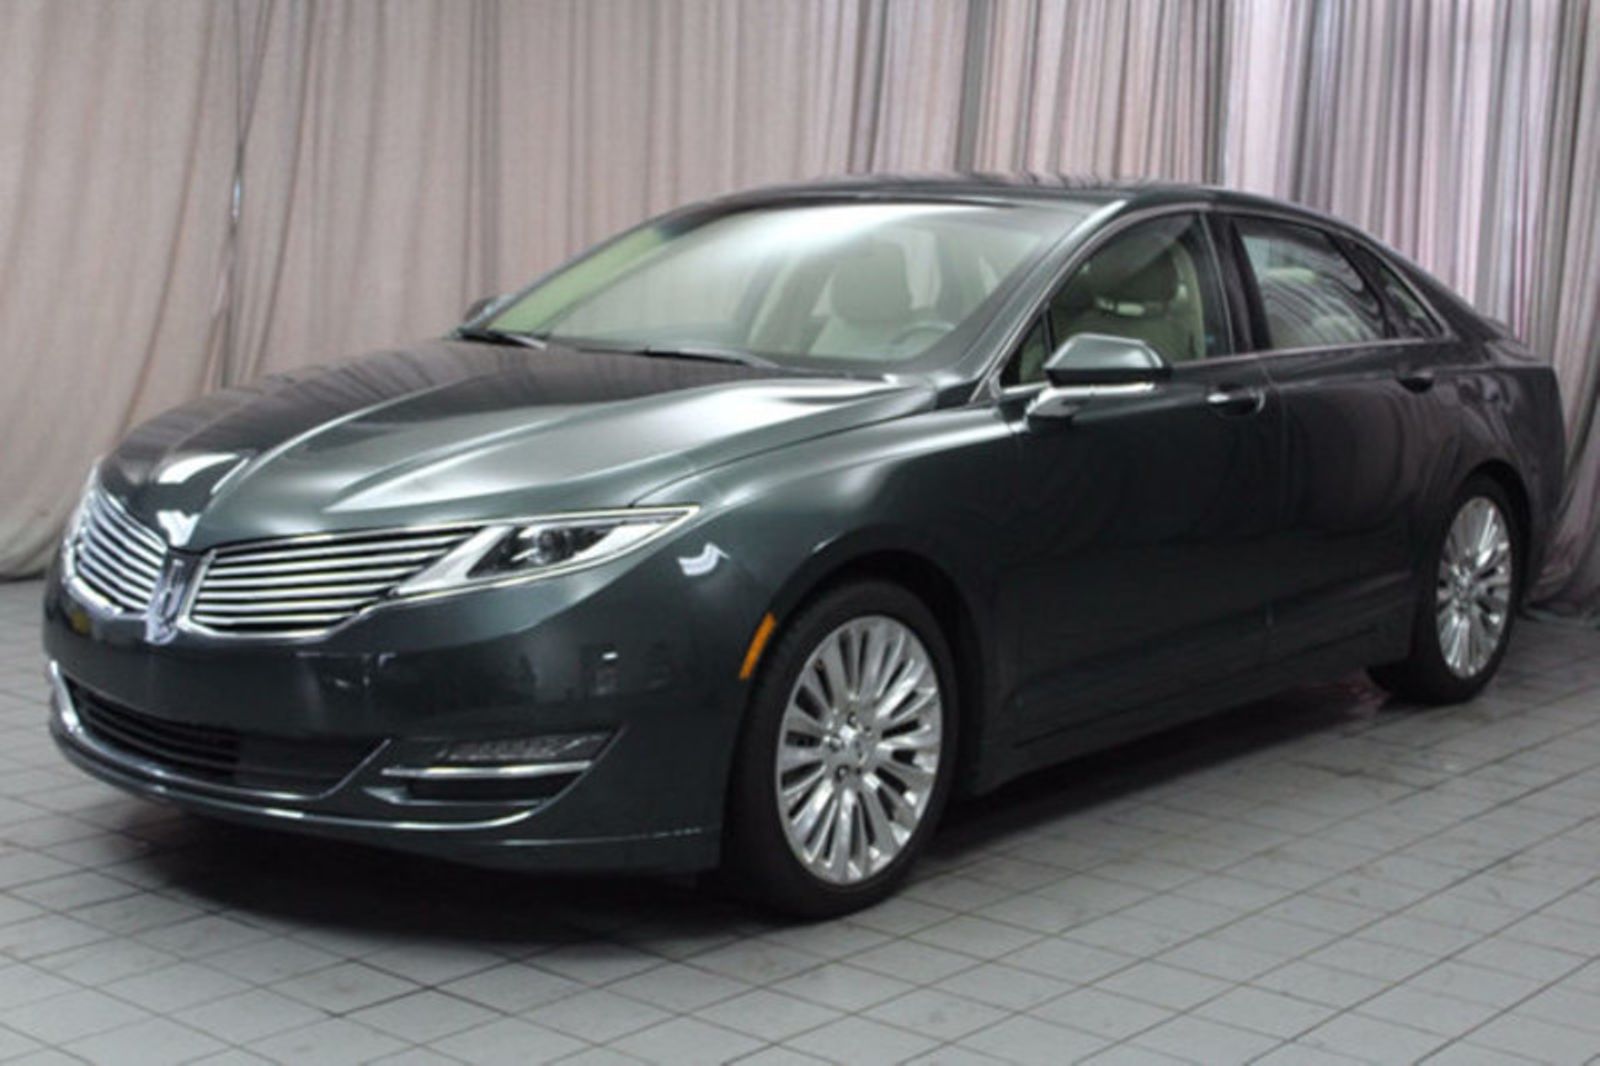 2015 lincoln mkz 4dr sedan awd city oh north coast auto mall of akron. Black Bedroom Furniture Sets. Home Design Ideas